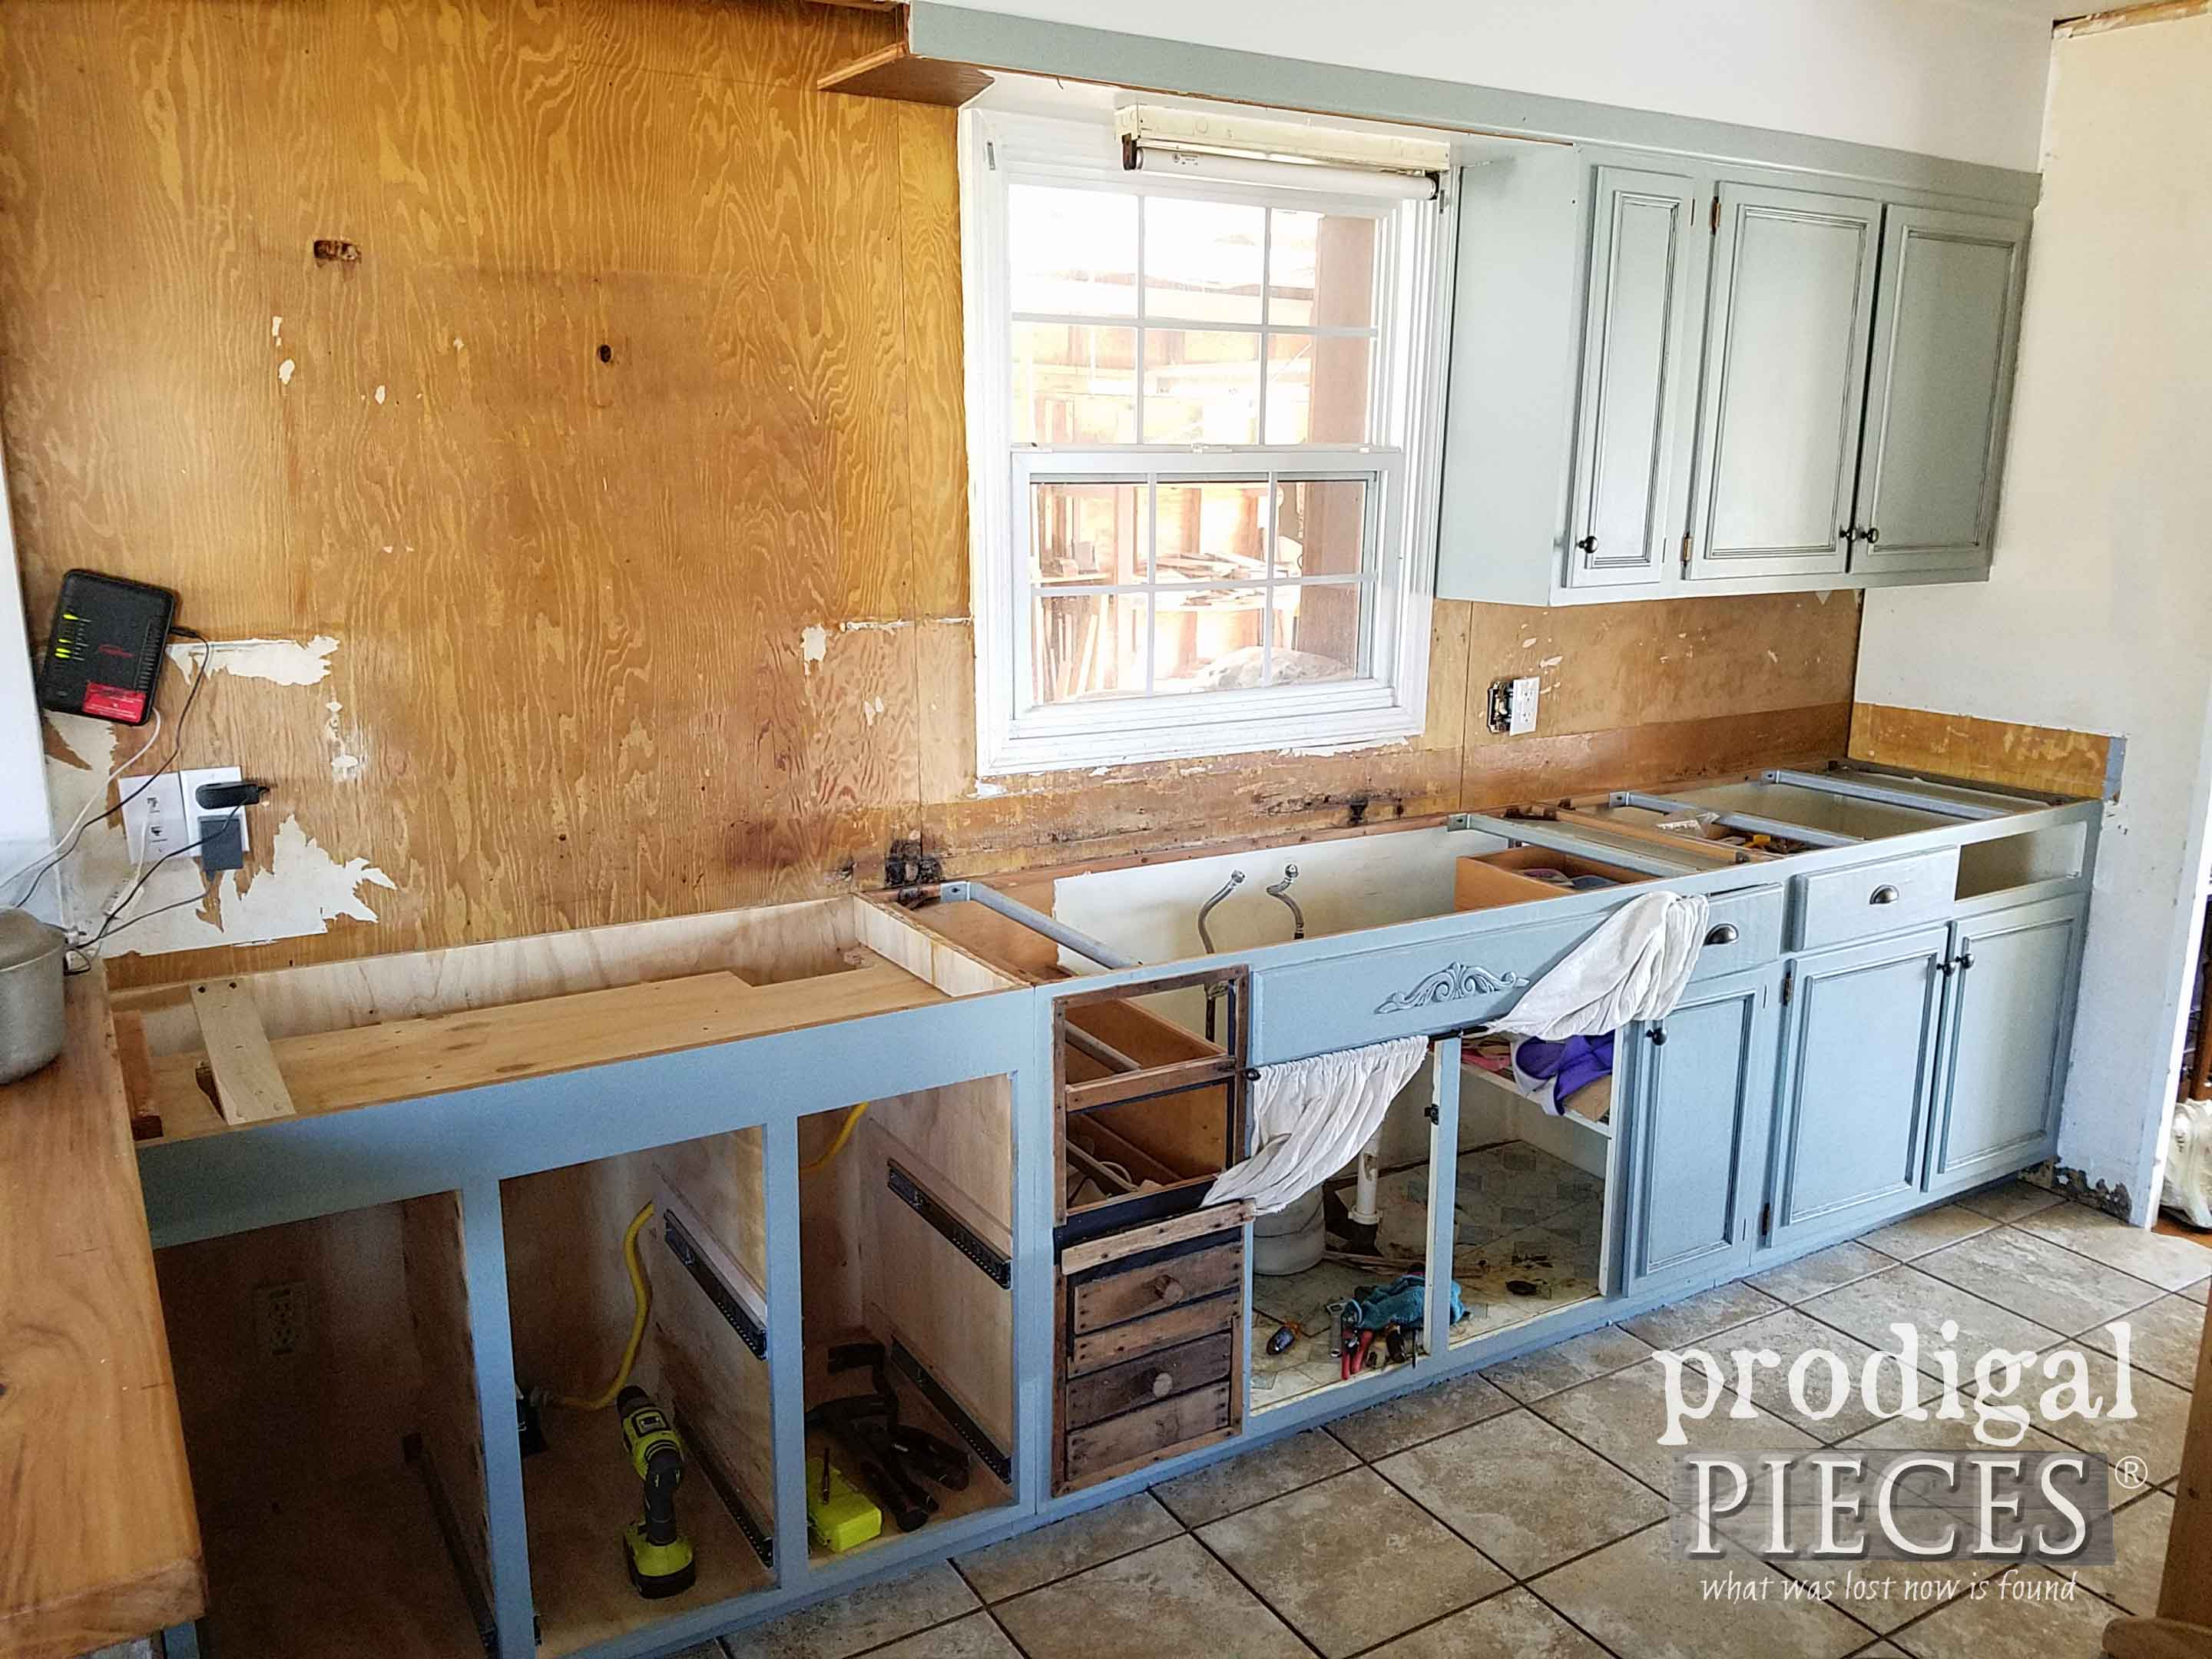 Remodeled Kitchen Cabinet Mess | prodigalpieces.com